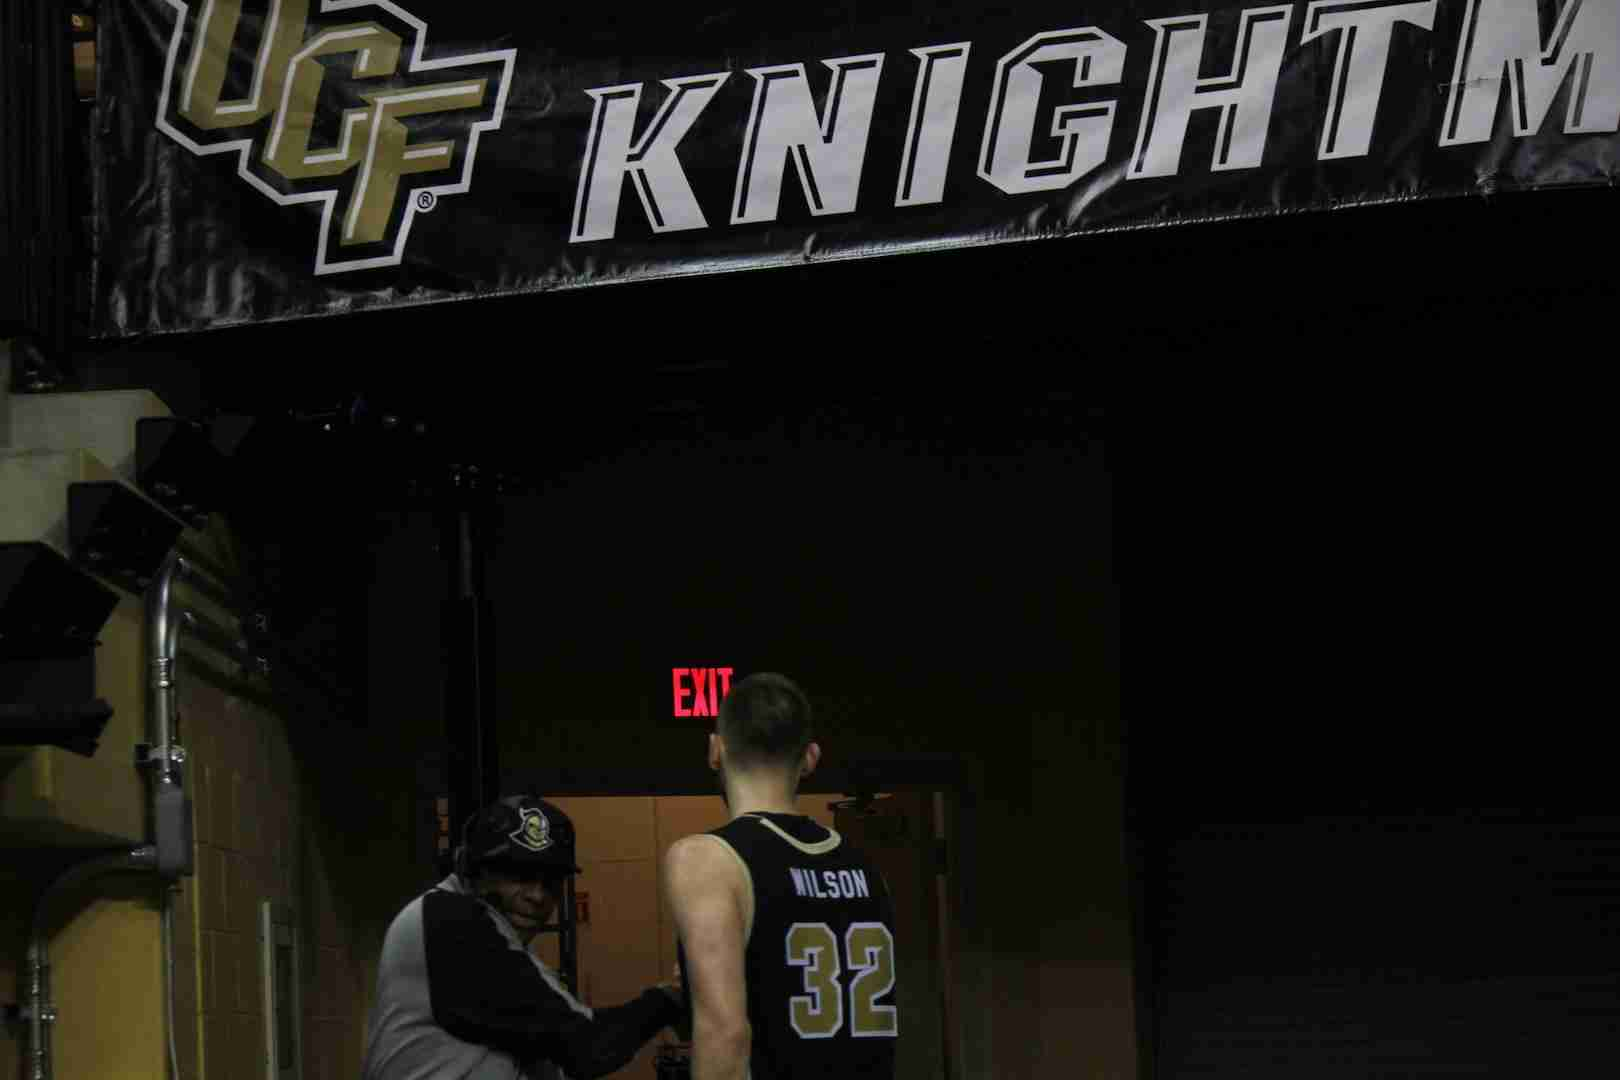 Kasey+Wilson%27s+last+home+game+as+a+UCF+Knight+was+a+71-66+loss+to+ECU.